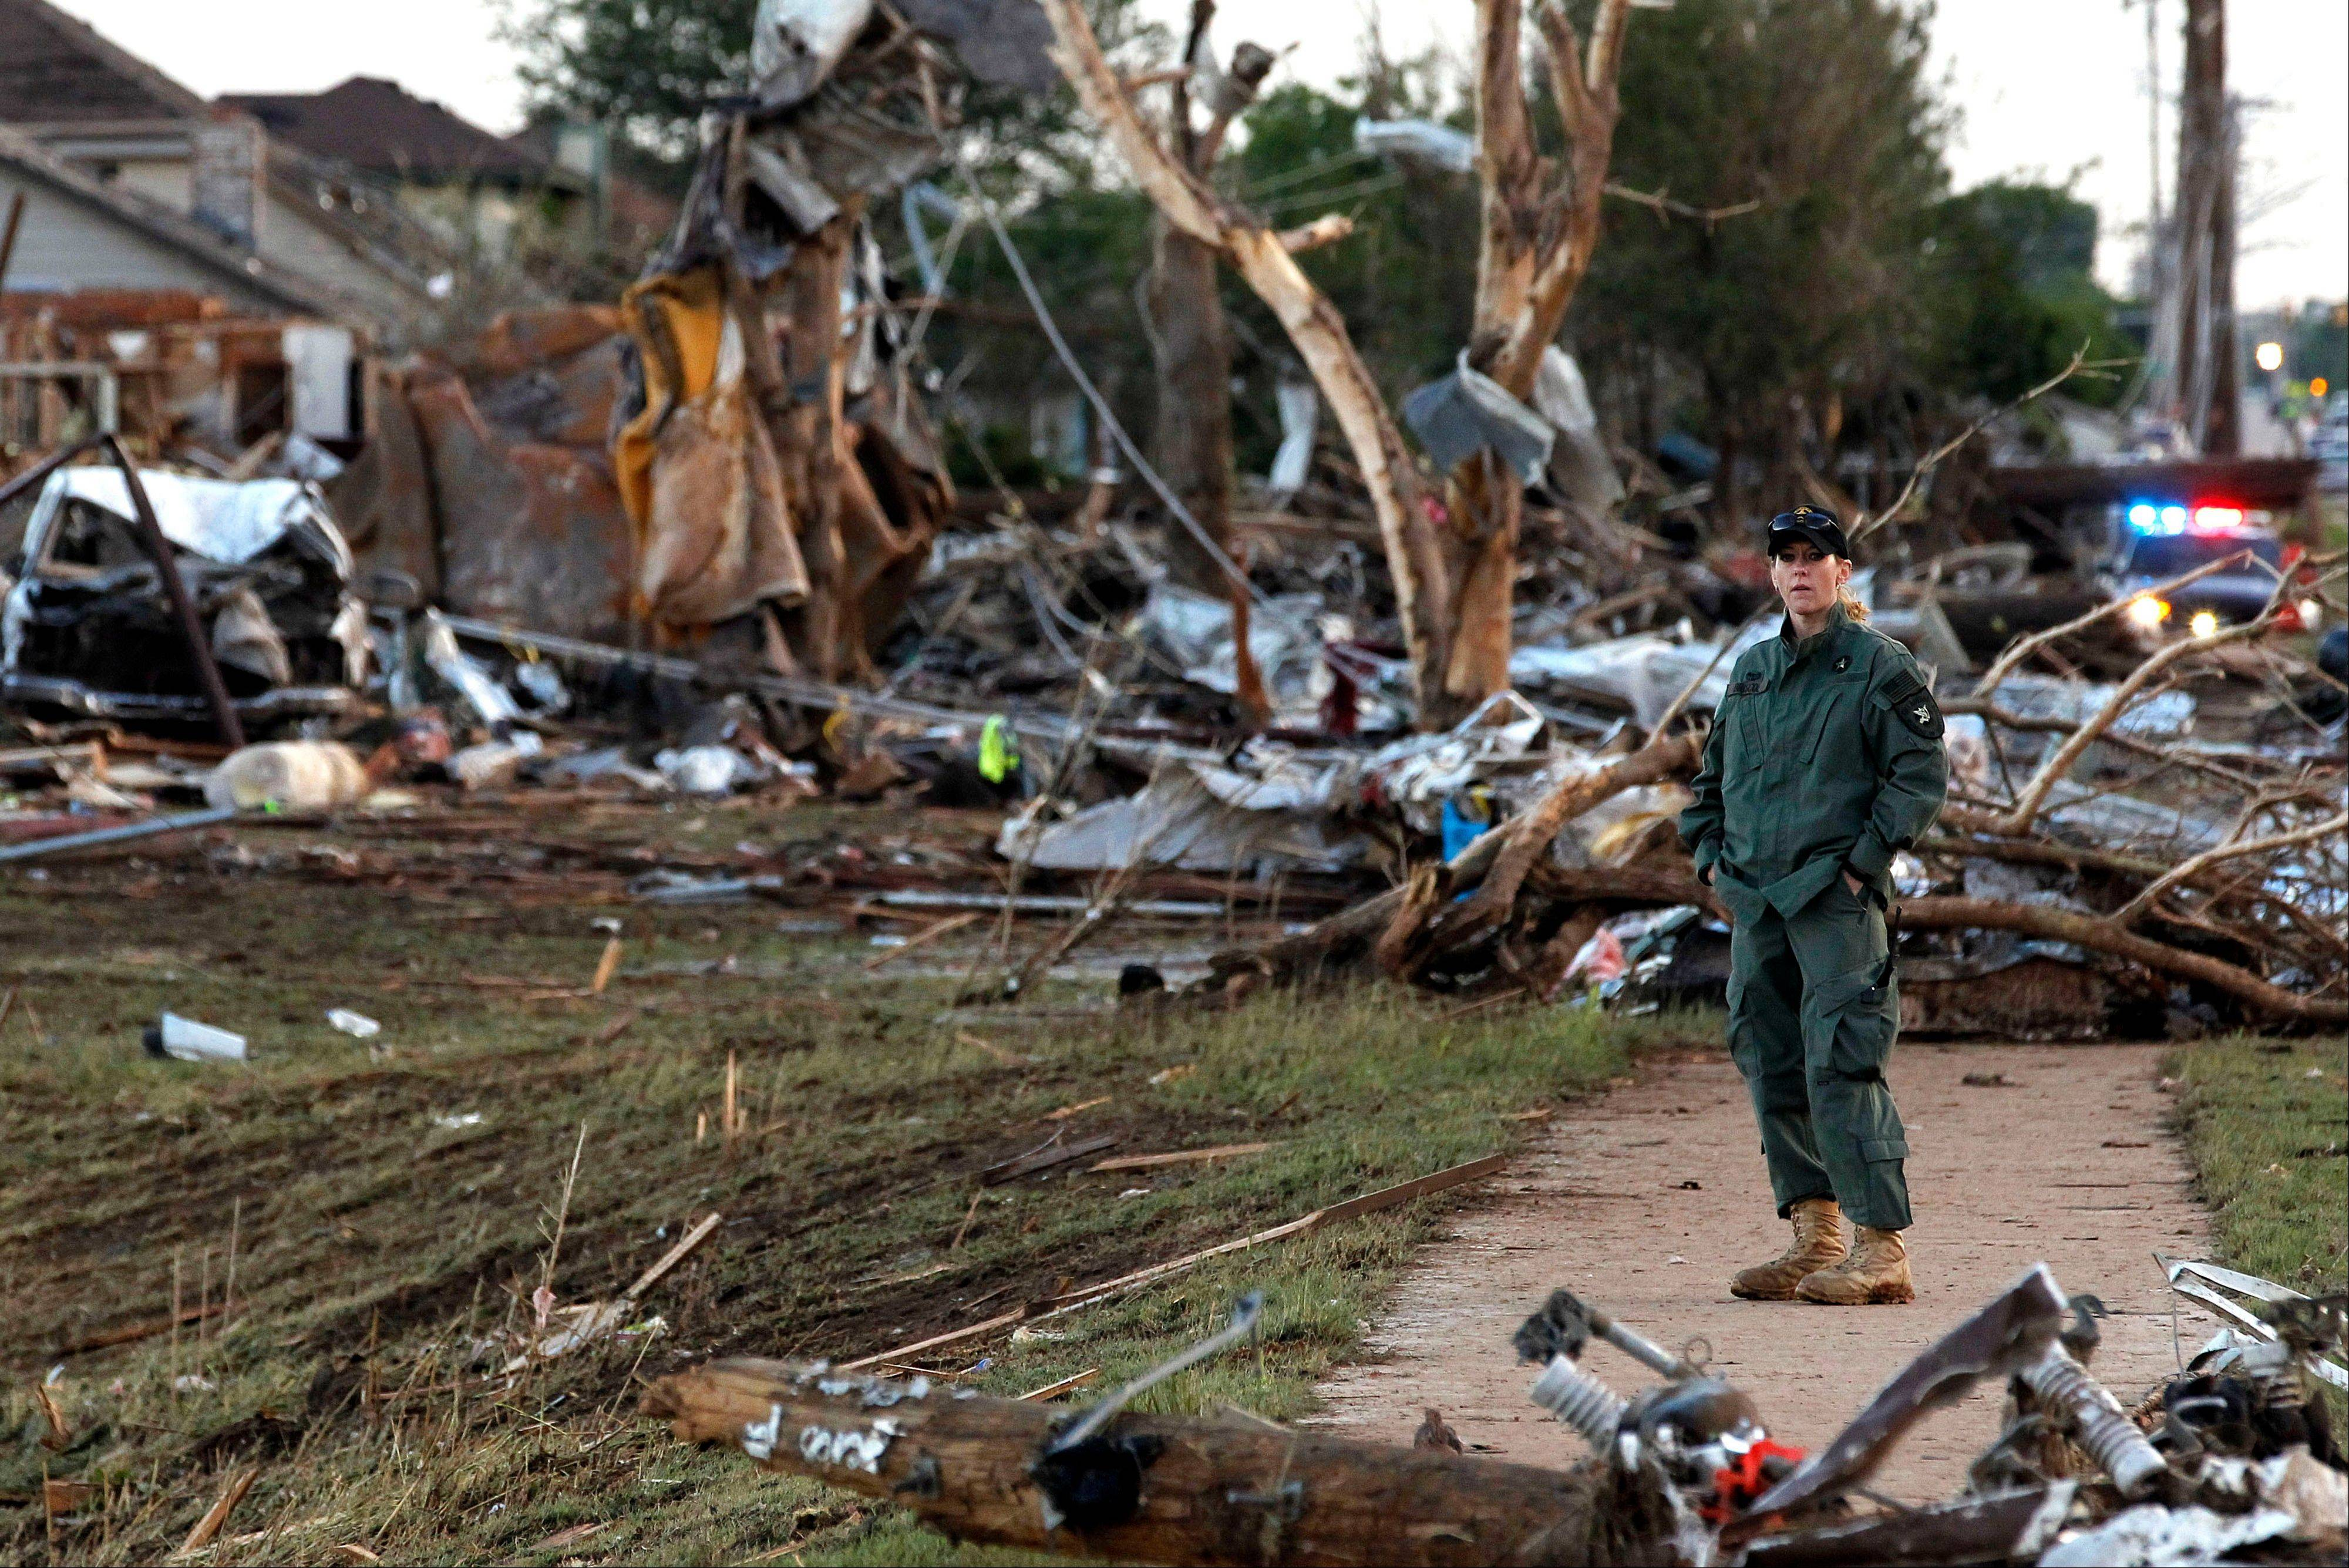 A member of a security team helps guard an area of rubble from a destroyed residential neighborhood, one day after a tornado moved through Moore, Okla., Tuesday, May 21, 2013. The huge tornado roared through the Oklahoma City suburb Monday, flattening entire neighborhoods and destroying an elementary school with a direct blow as children and teachers huddled against the winds.